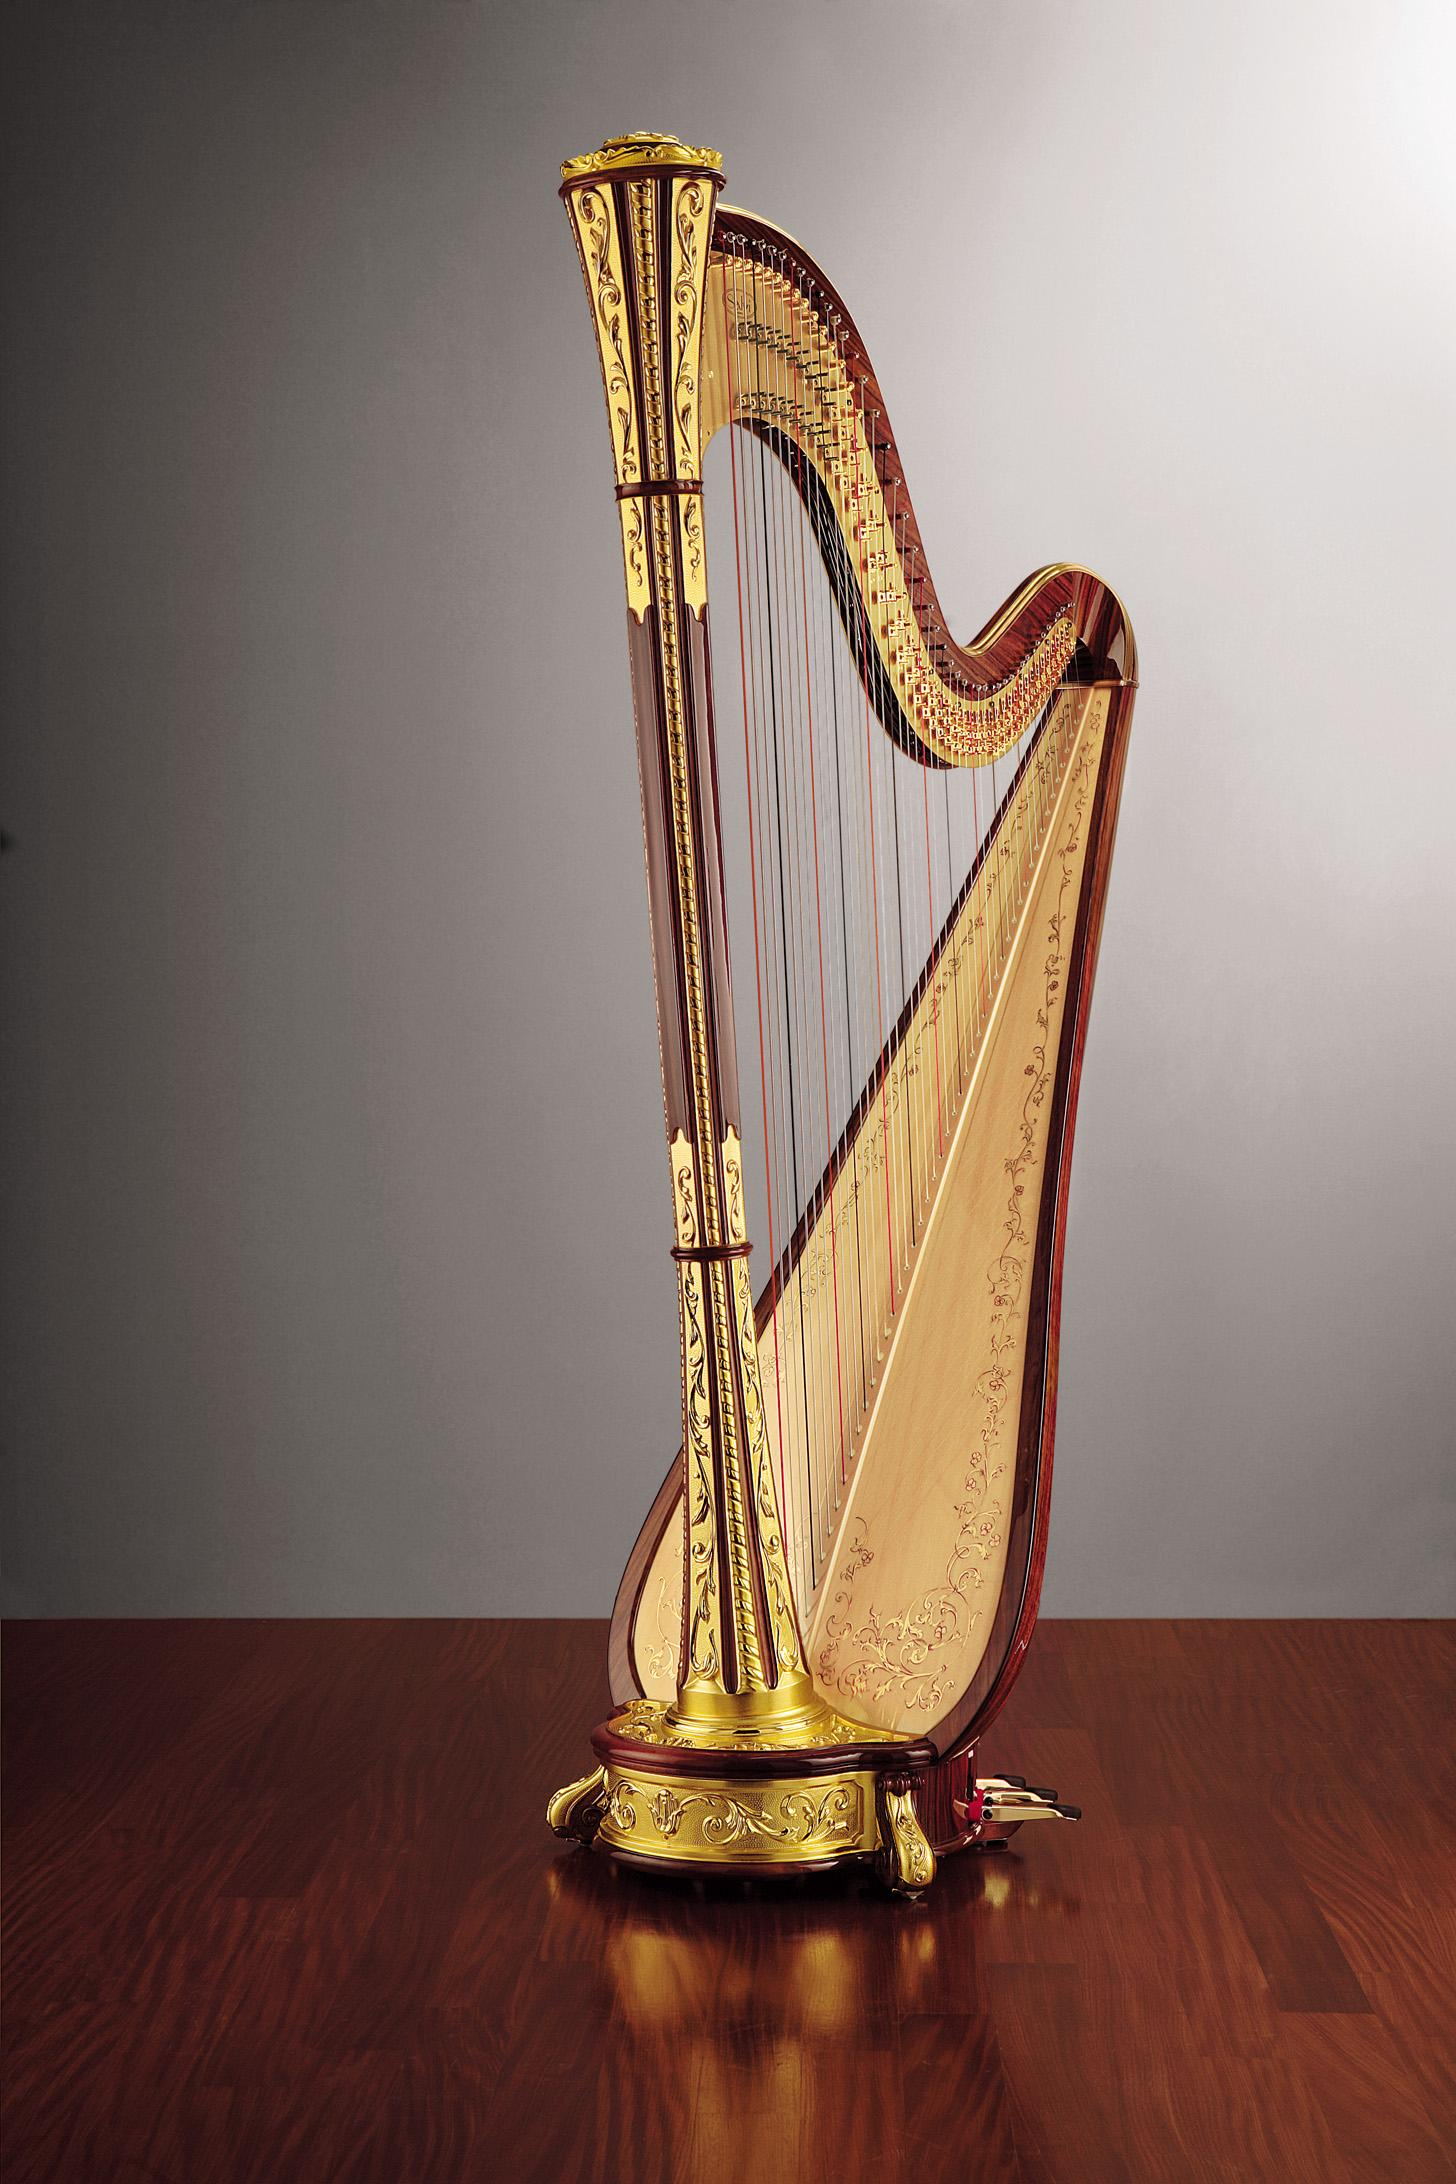 Random image Harp HD wallpapers and backgrounds photos